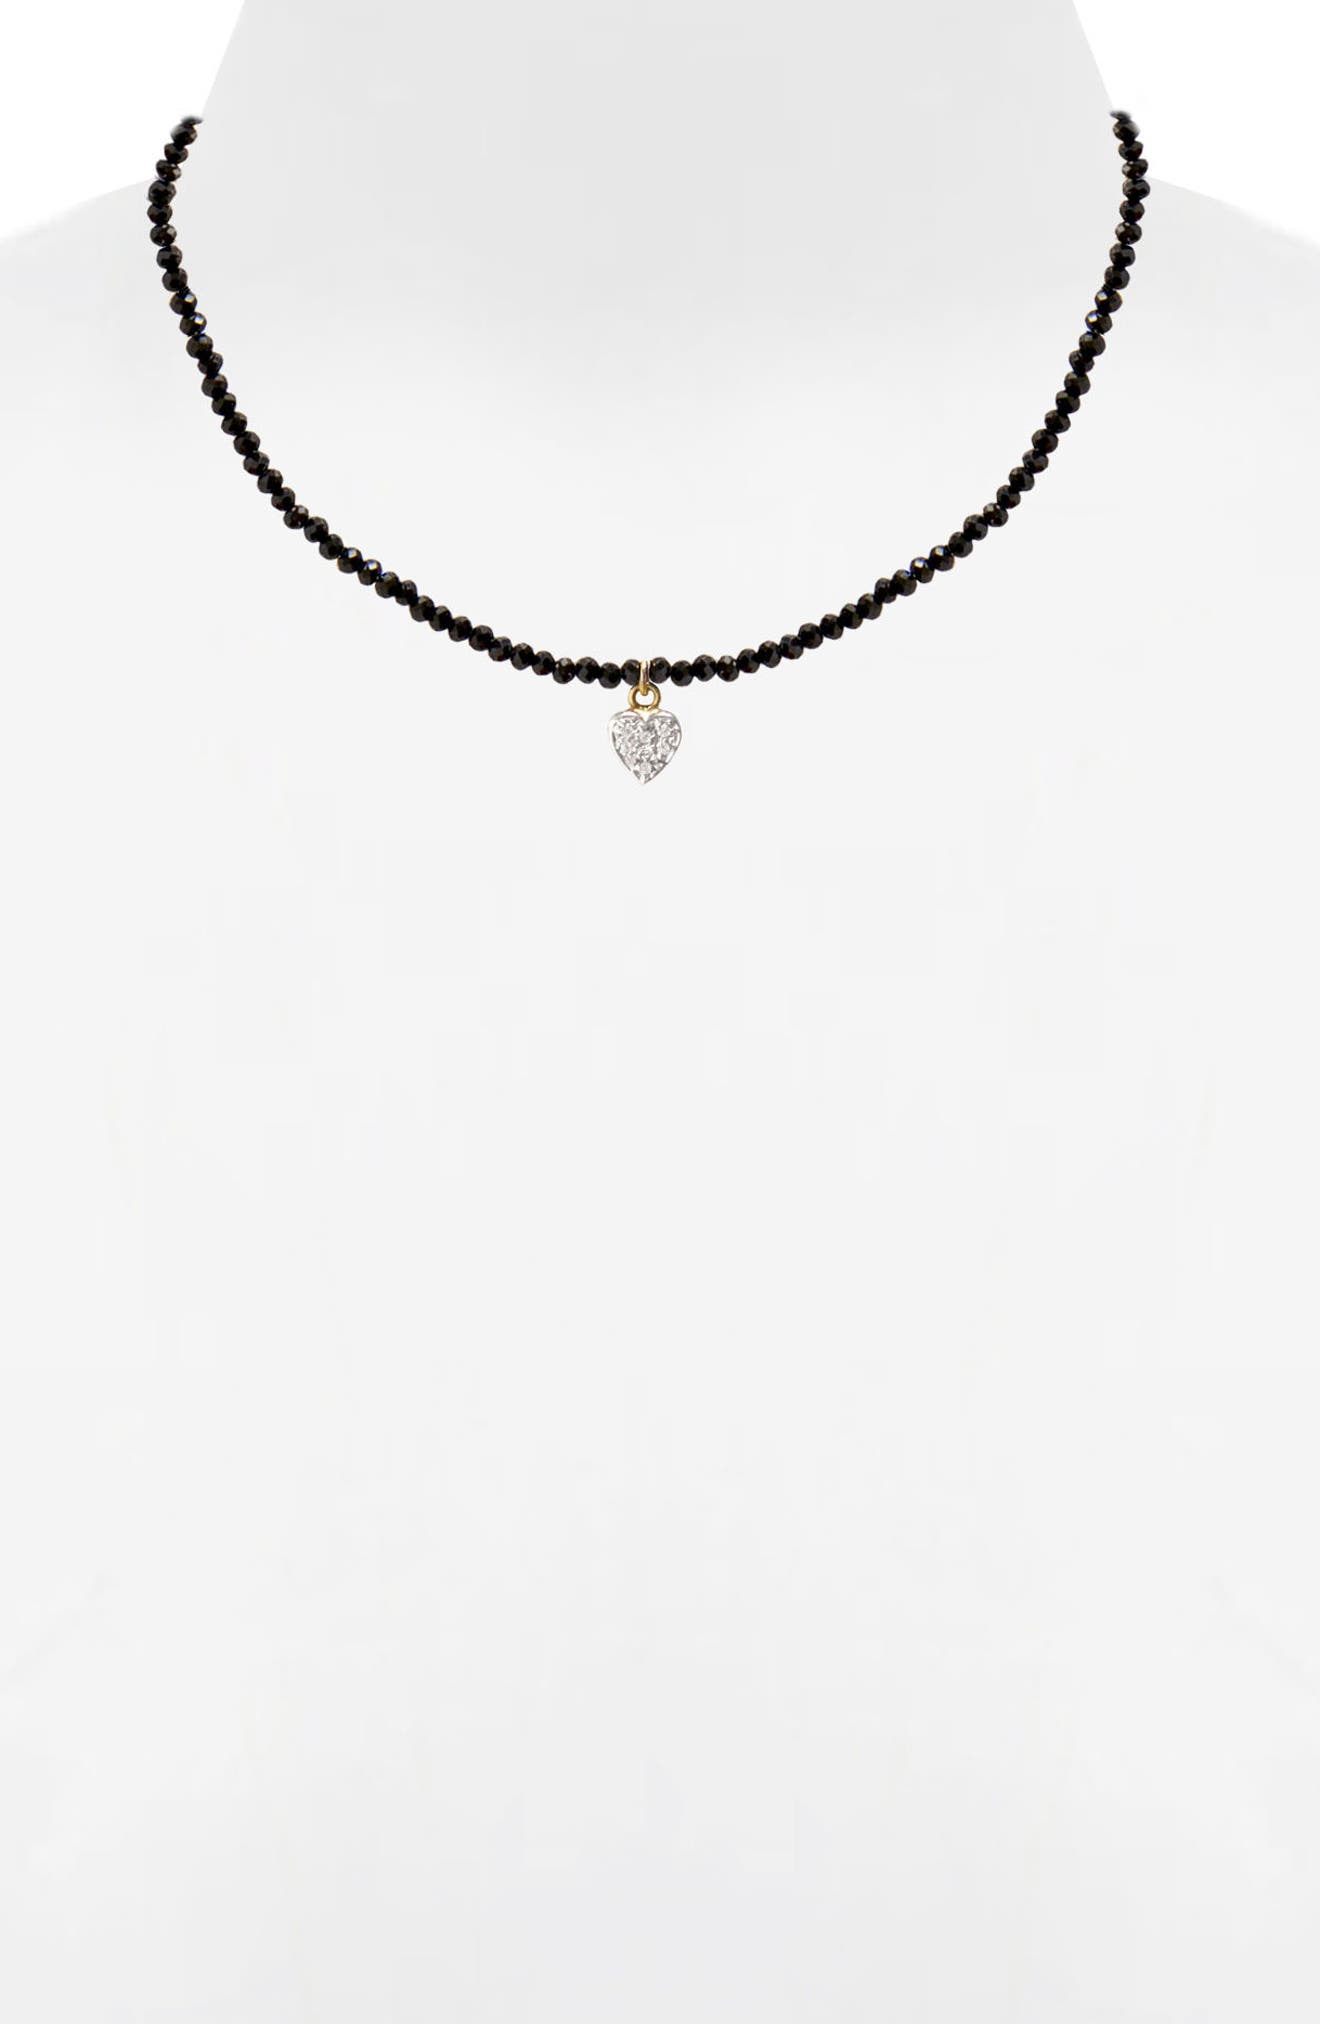 Jane Basch Diamond Heart Pendant Necklace,                             Alternate thumbnail 2, color,                             BLACK ONYX